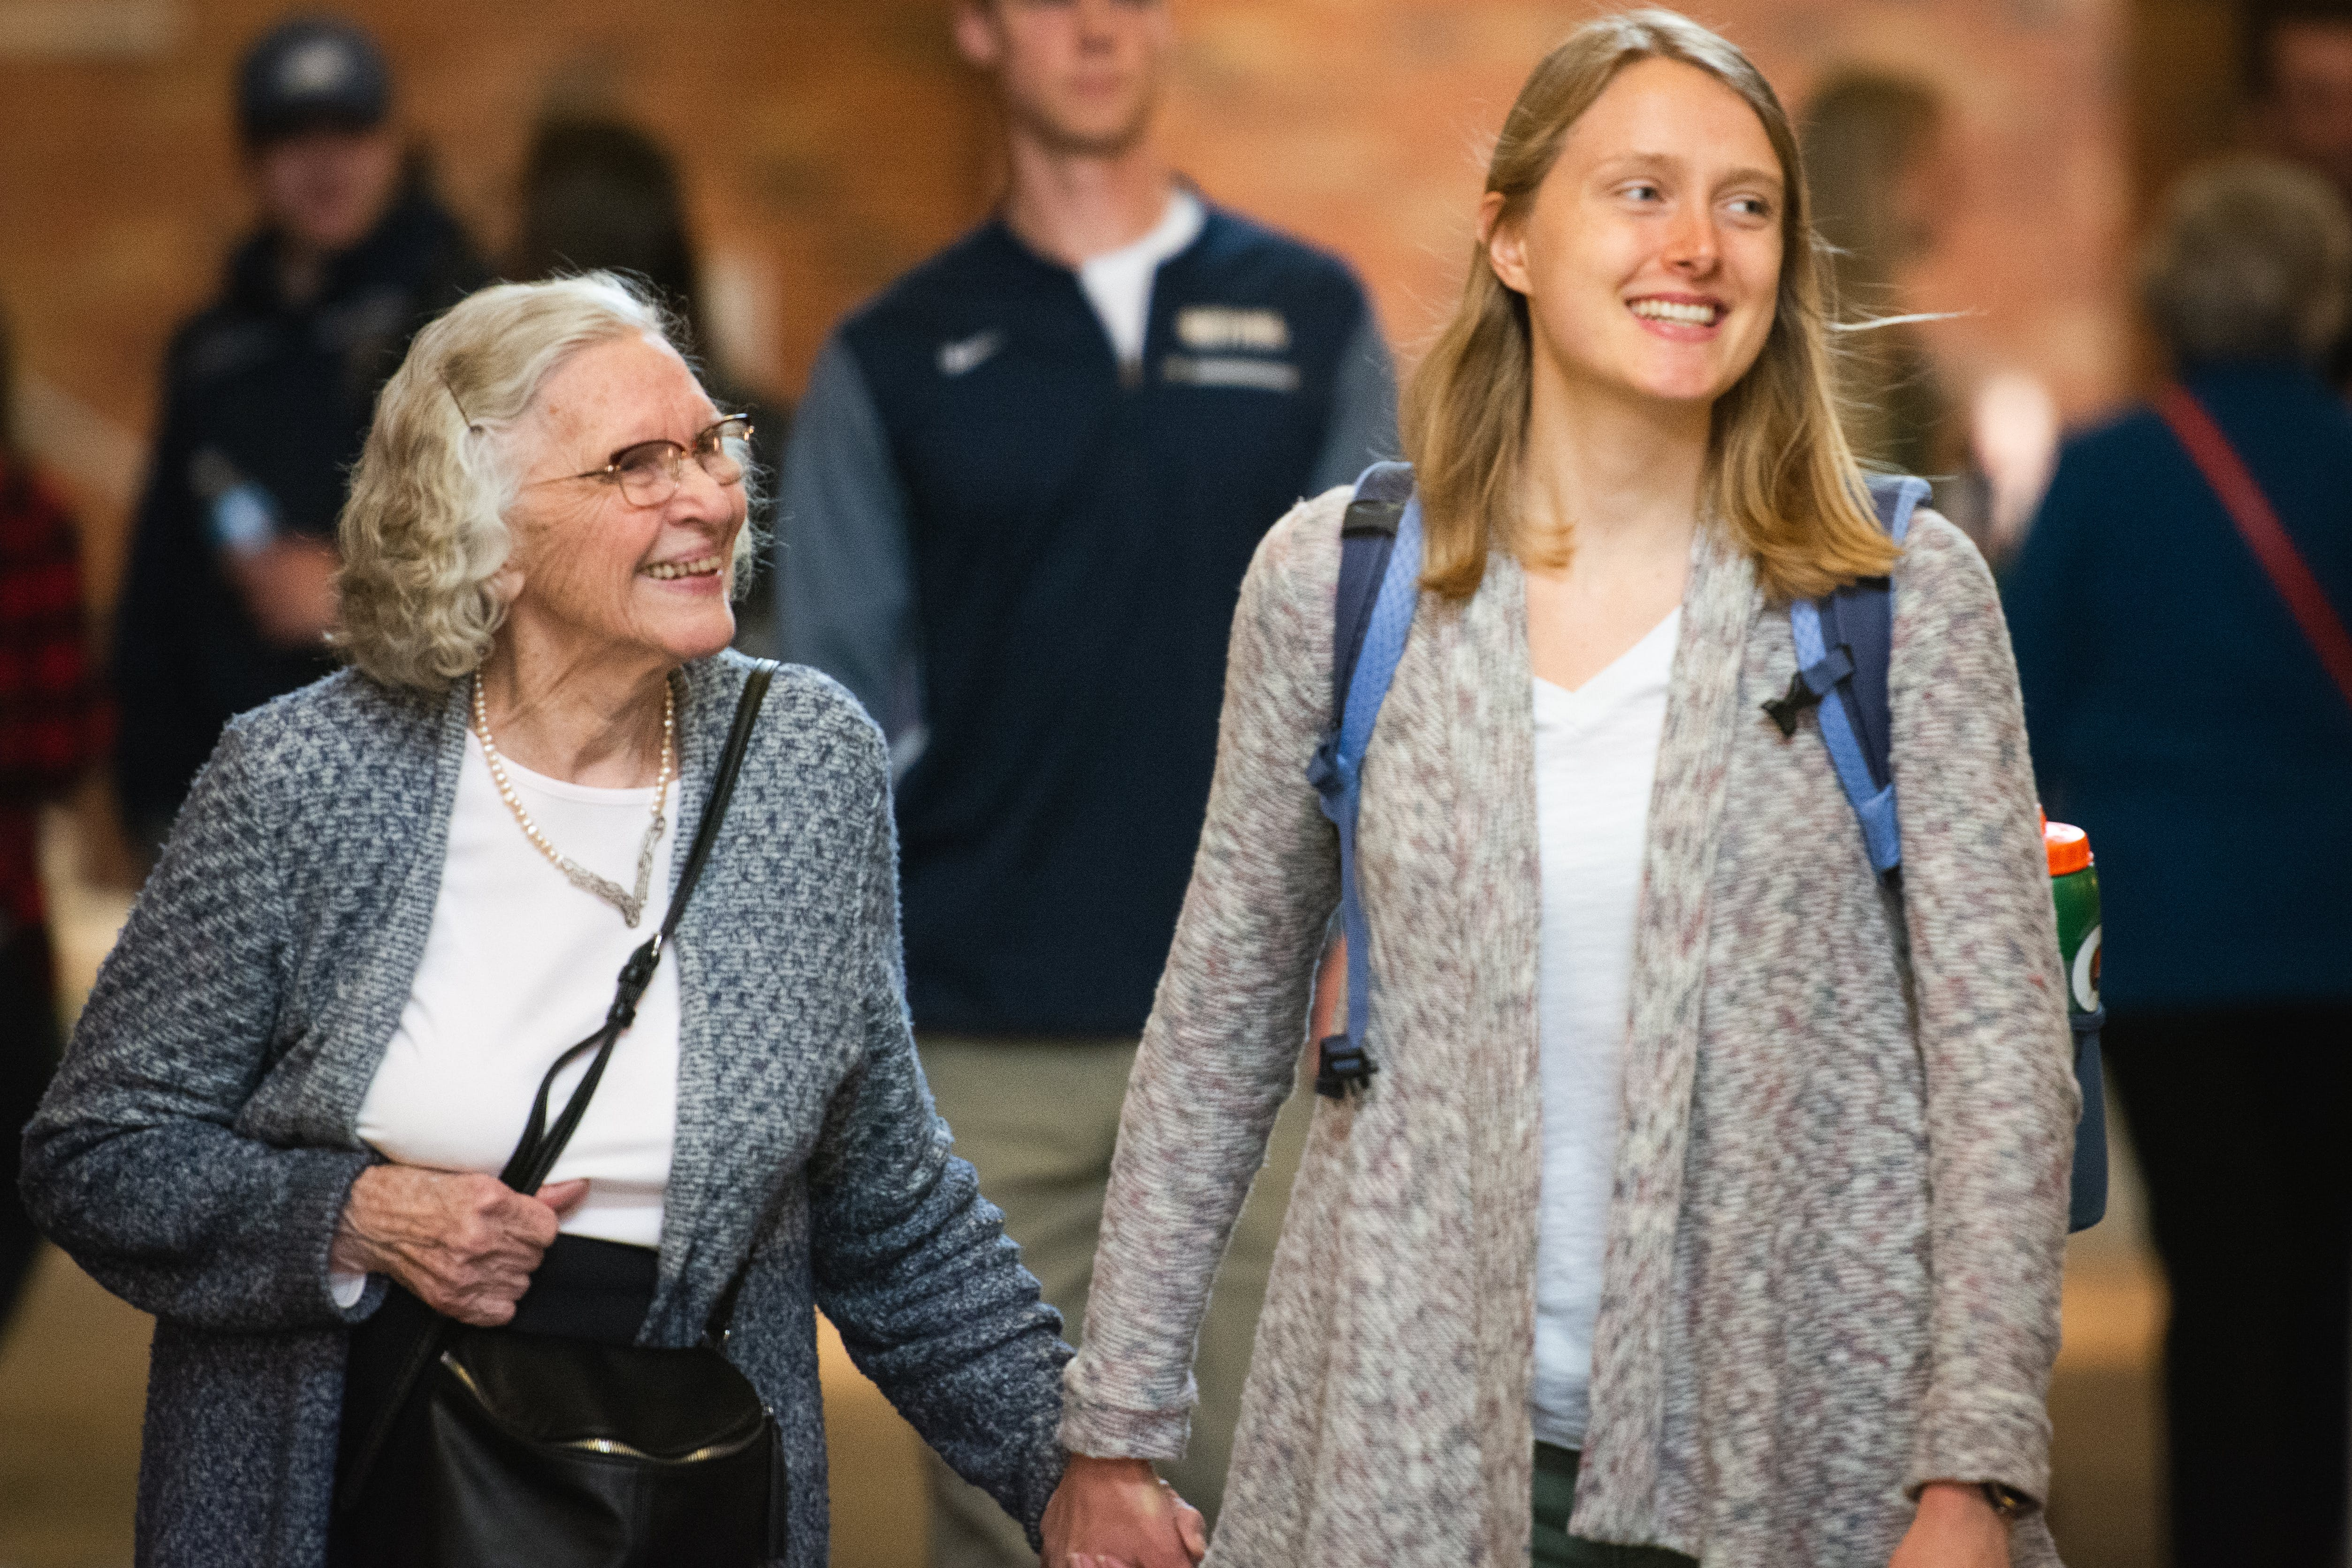 Student and grandparent hold hands in the hallway.